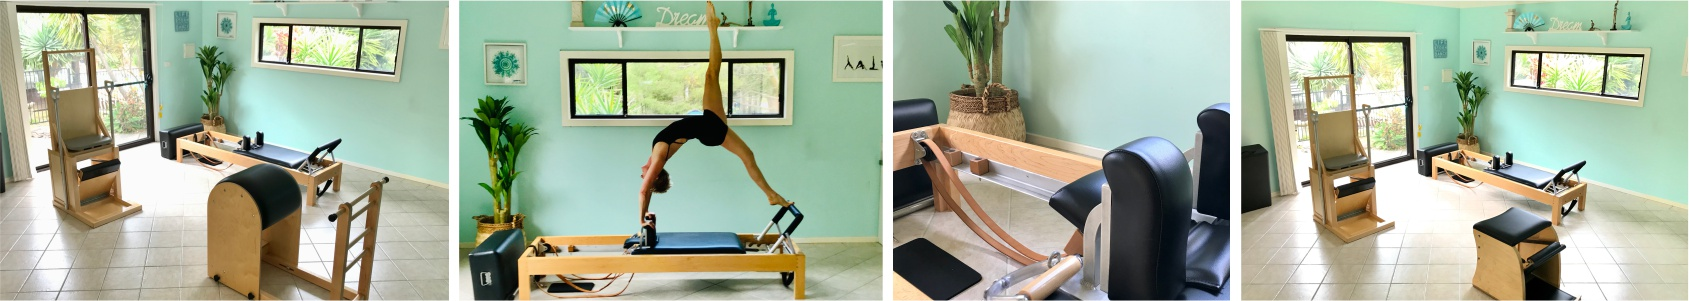 pilates studio classes Wamberal